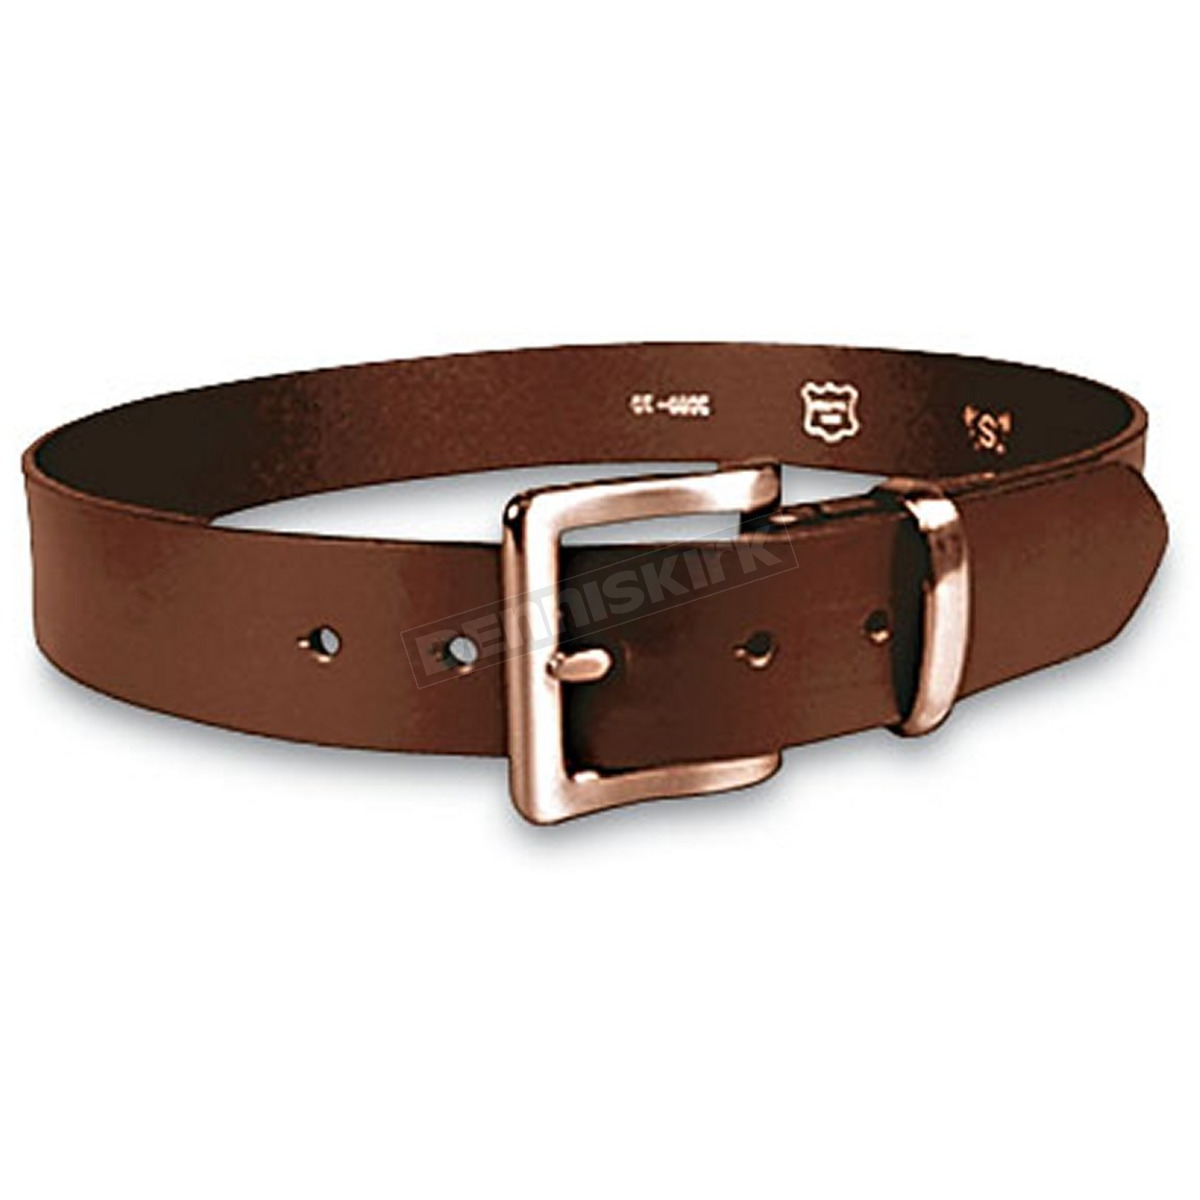 leathers plain leather belt w removable buckle ml40